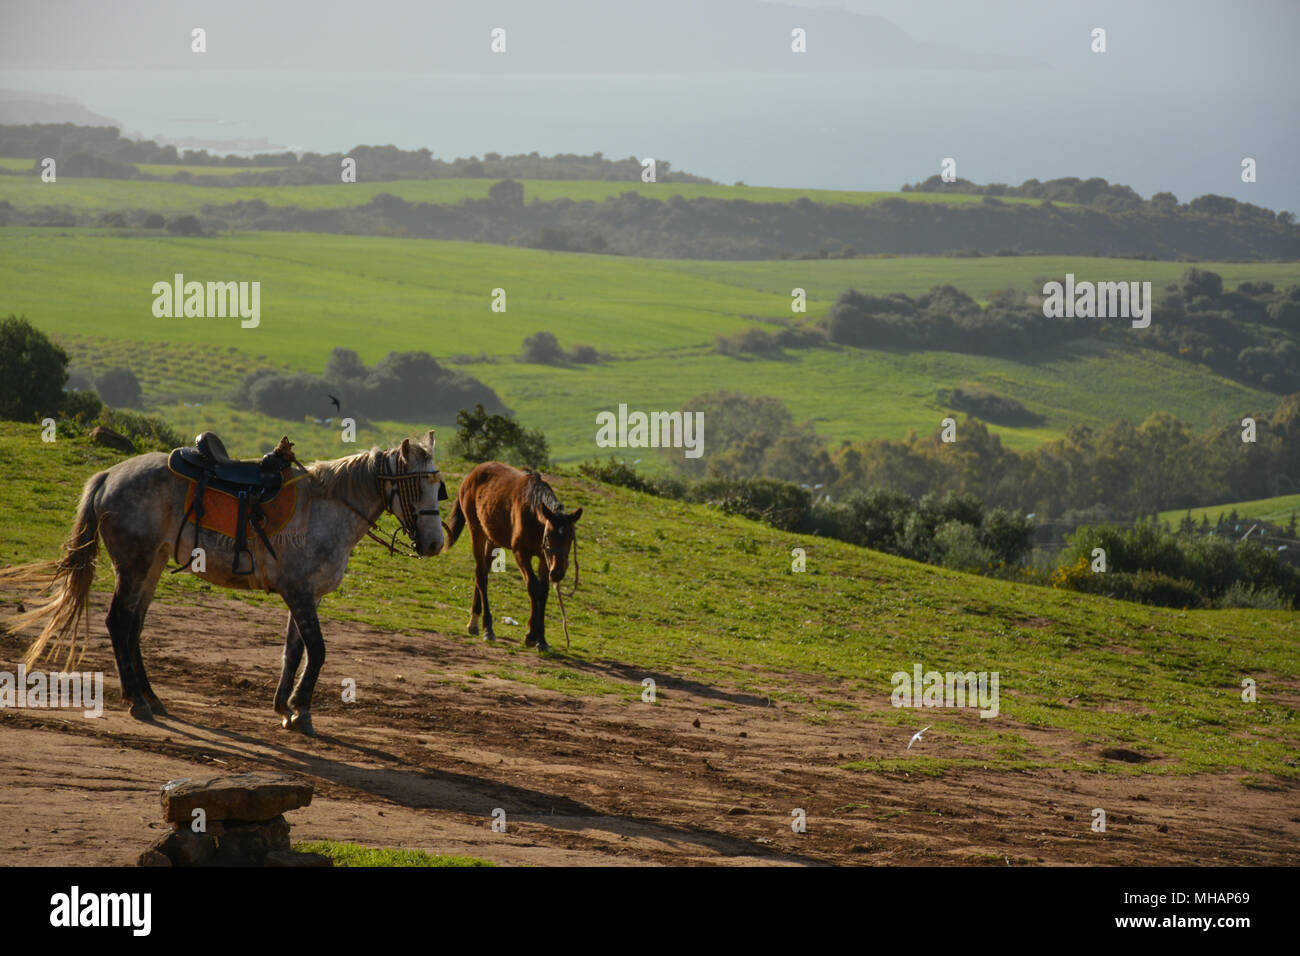 Horses in the Algerian wild nature. - Stock Image